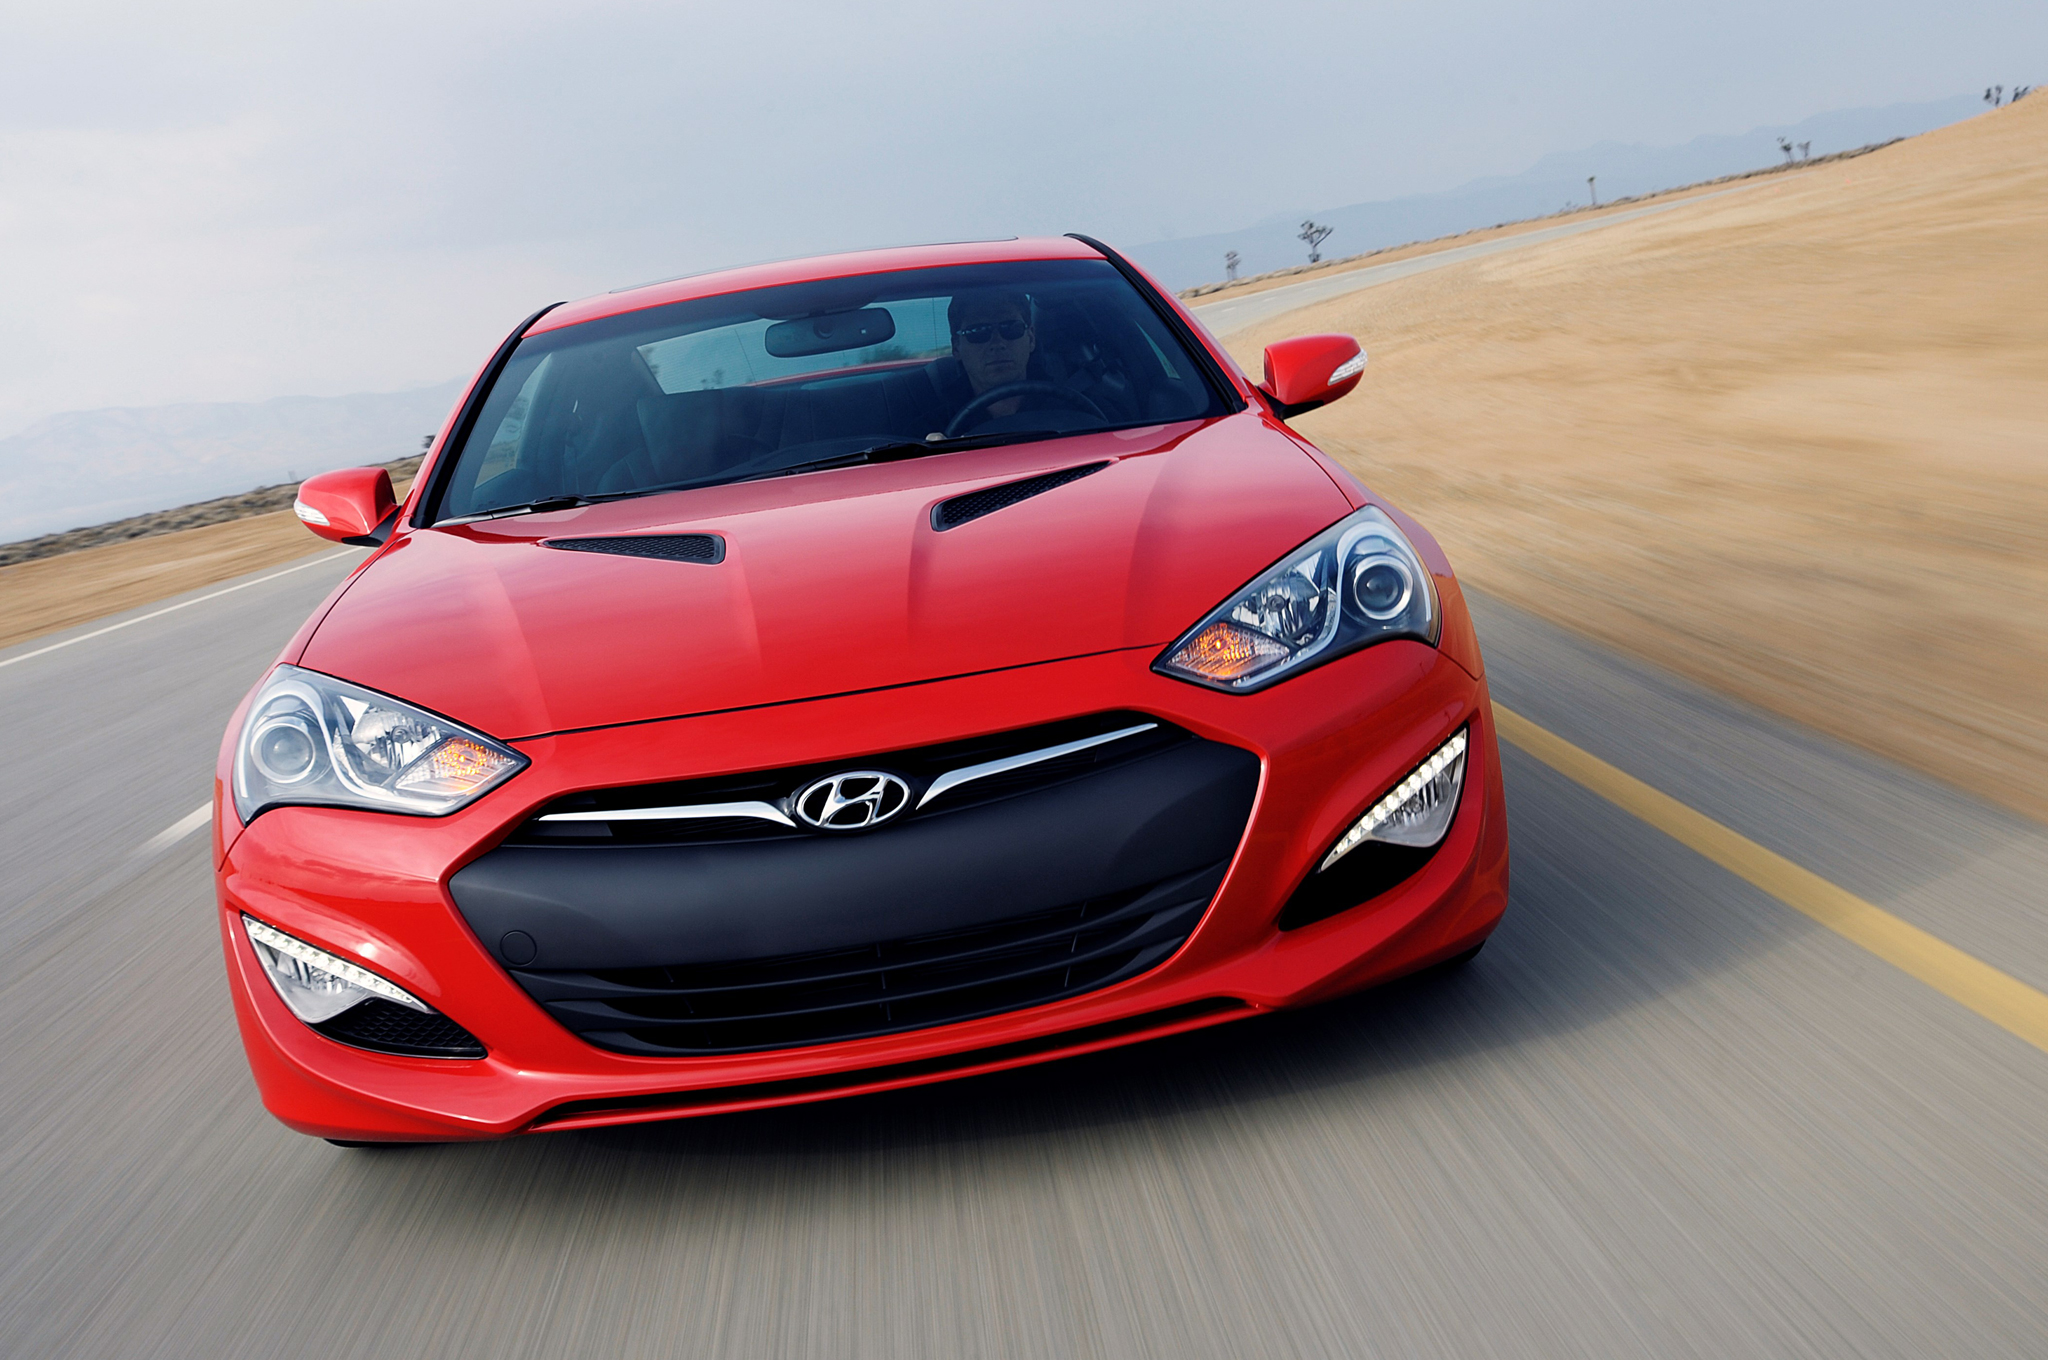 We Hear: 2015 Hyundai Genesis Coupe Drops Turbo 2.0-liter - Motor Trend